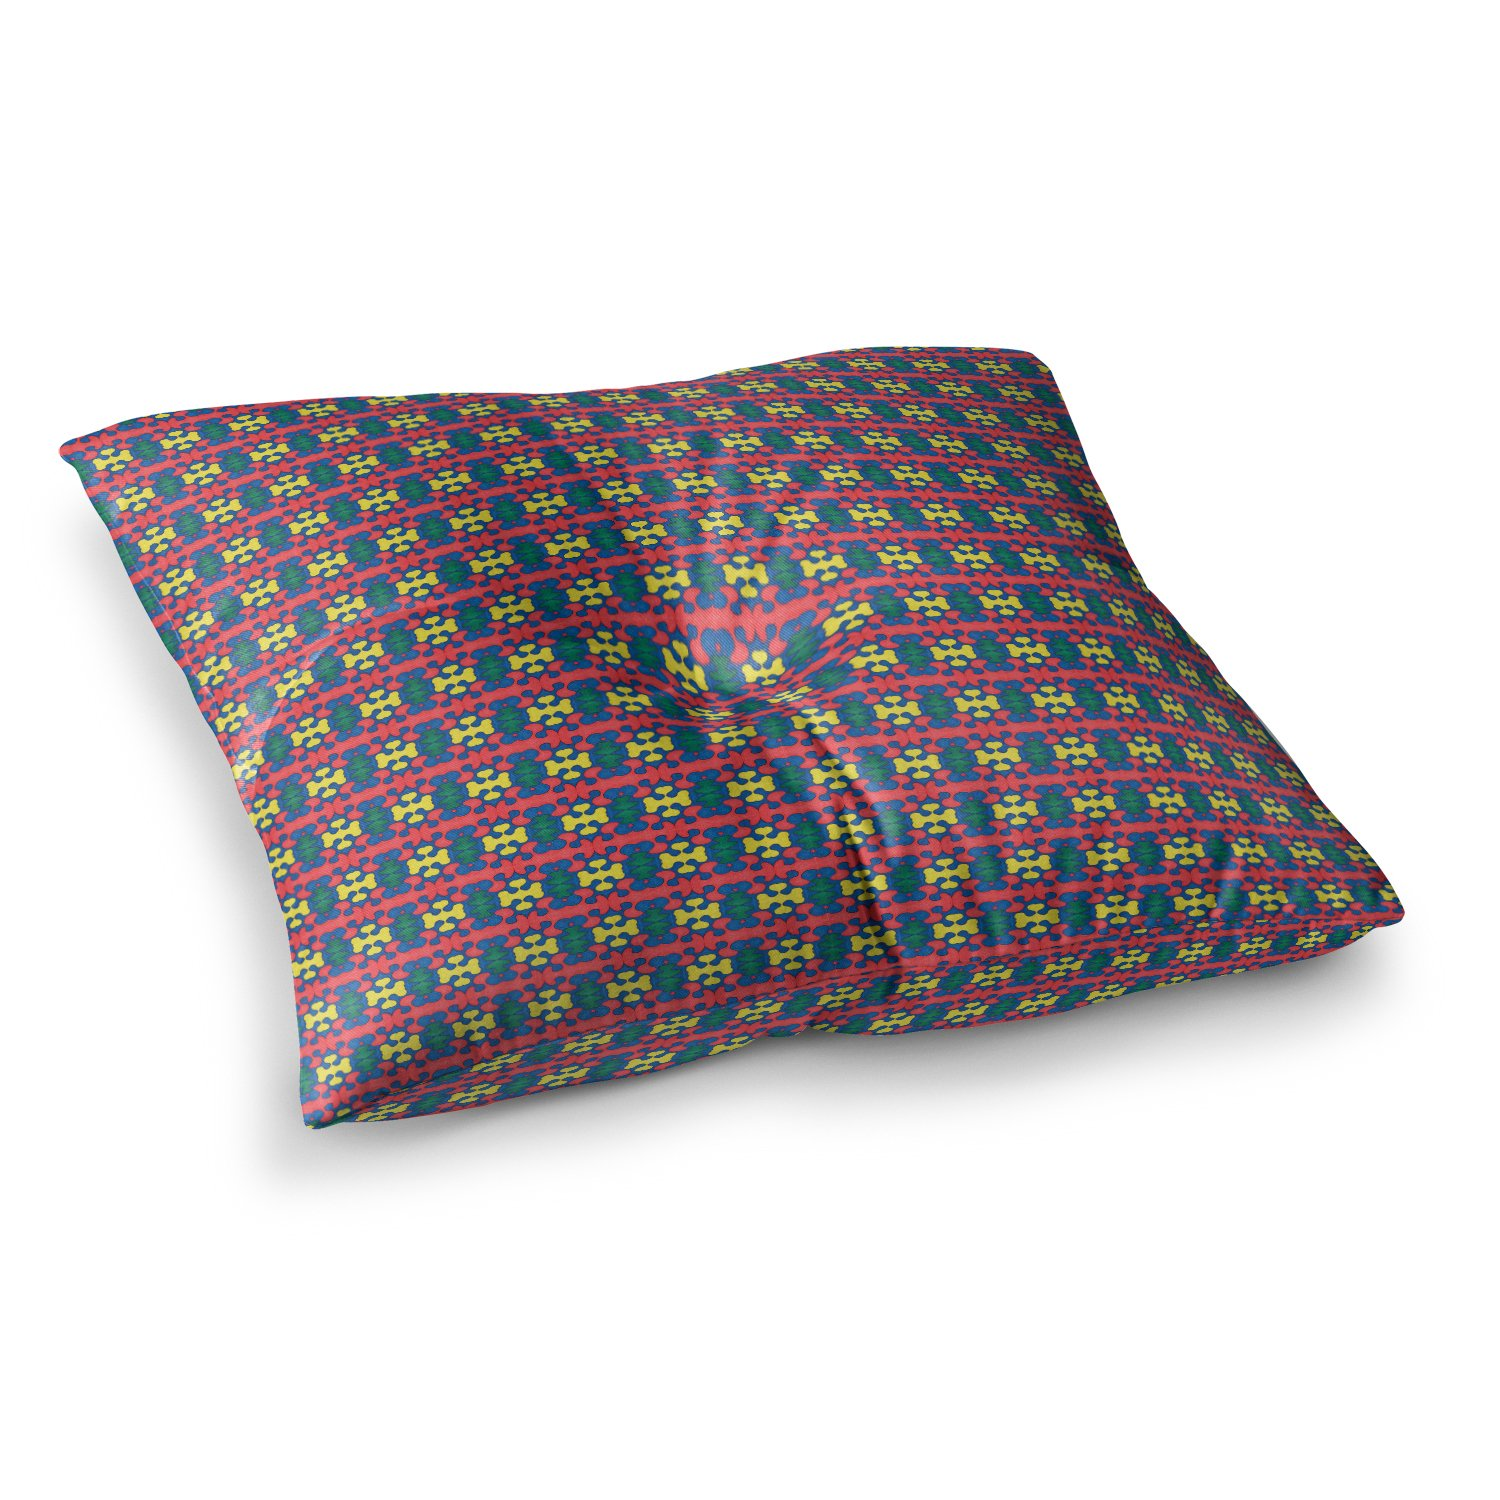 23 x 23 Square Floor Pillow Kess InHouse Empire Ruhl Delilah Red Pattern